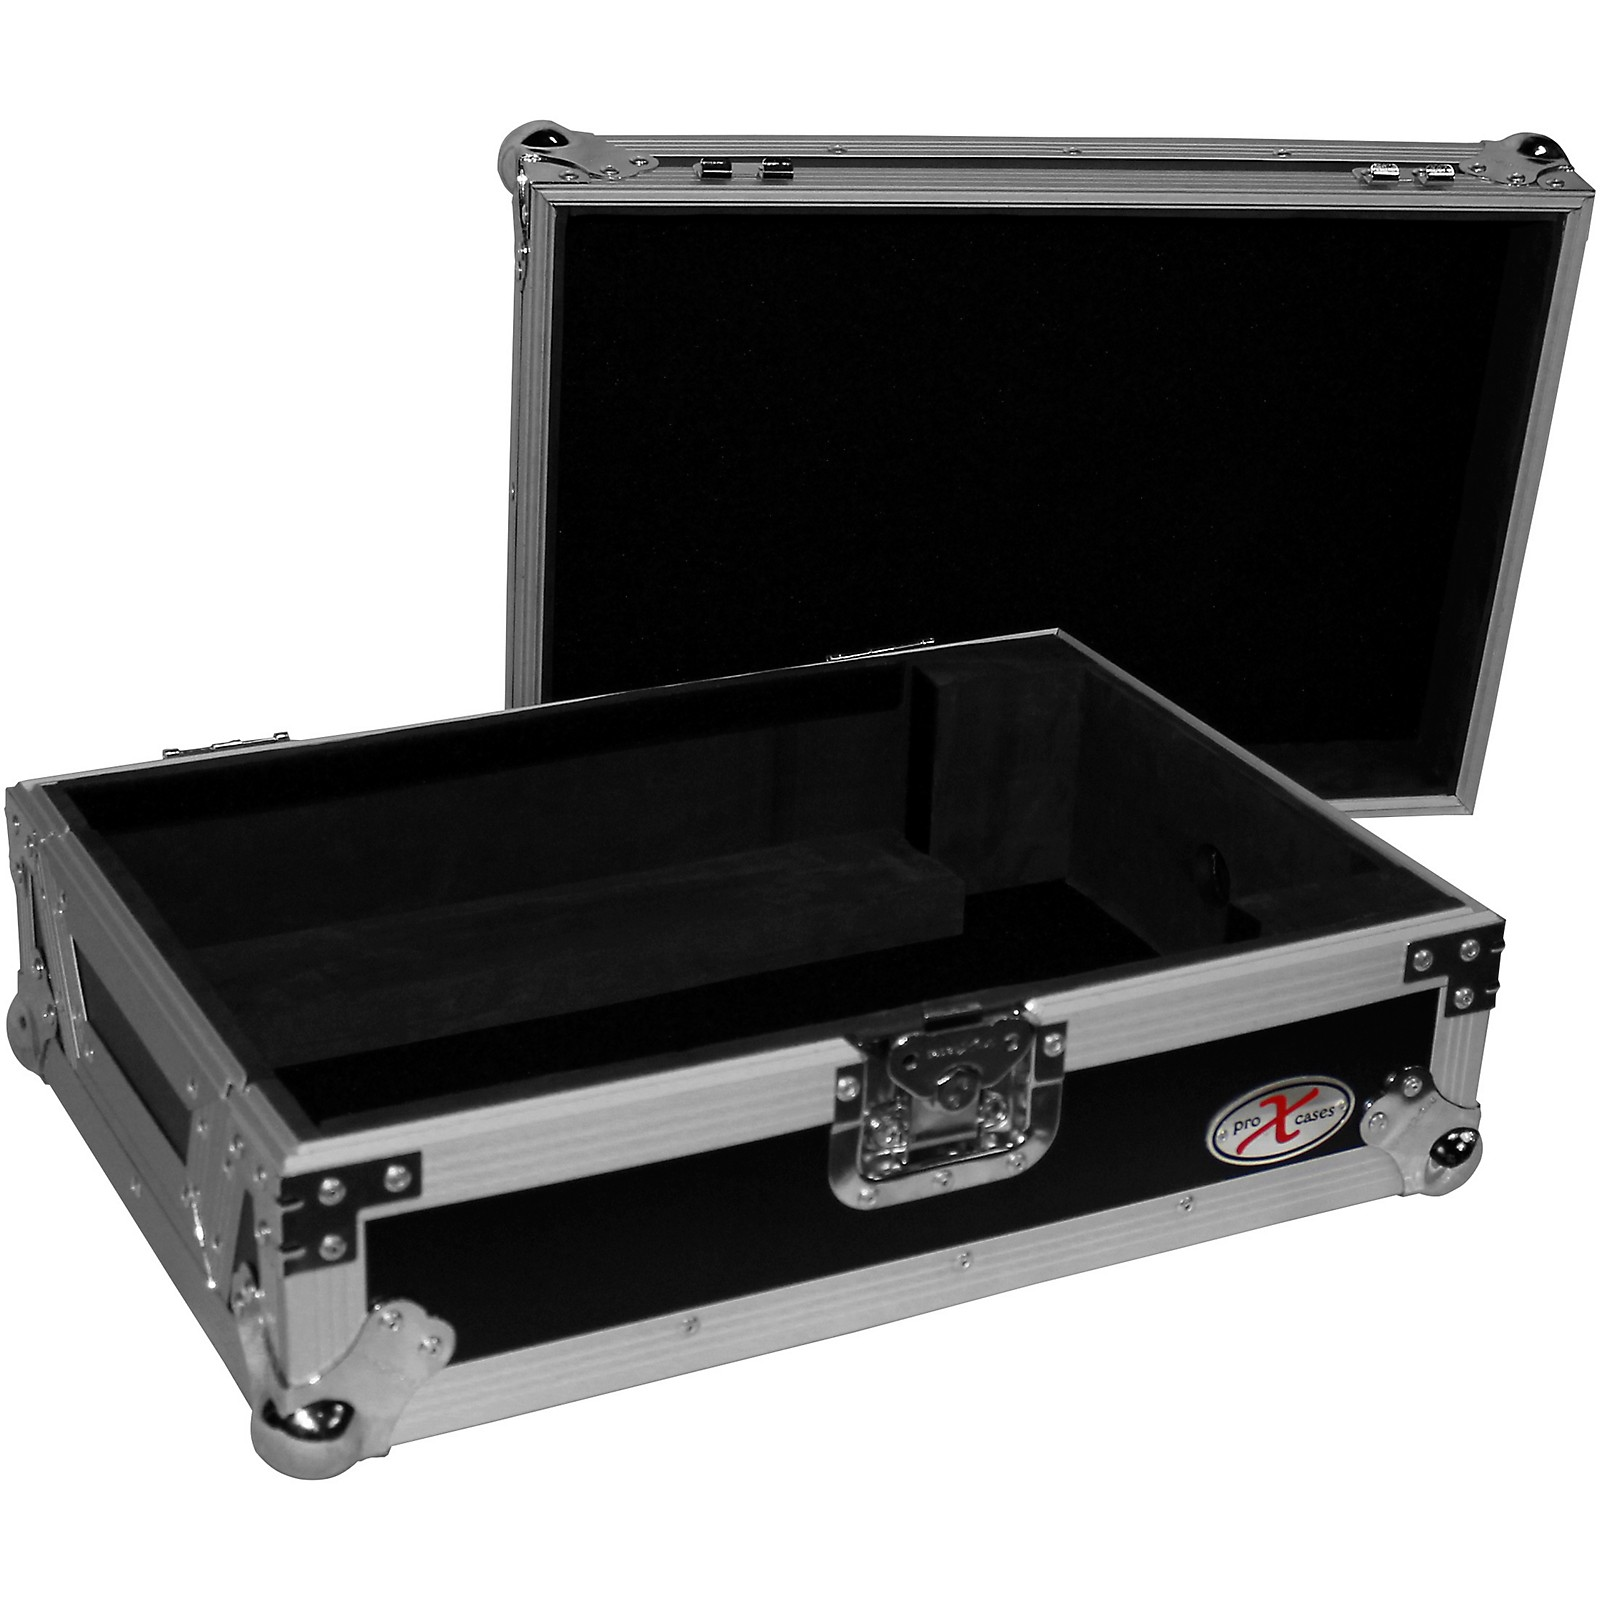 ProX XS-CD Flight Case for CDJ-2000NXS2 and Large-Format Media Players